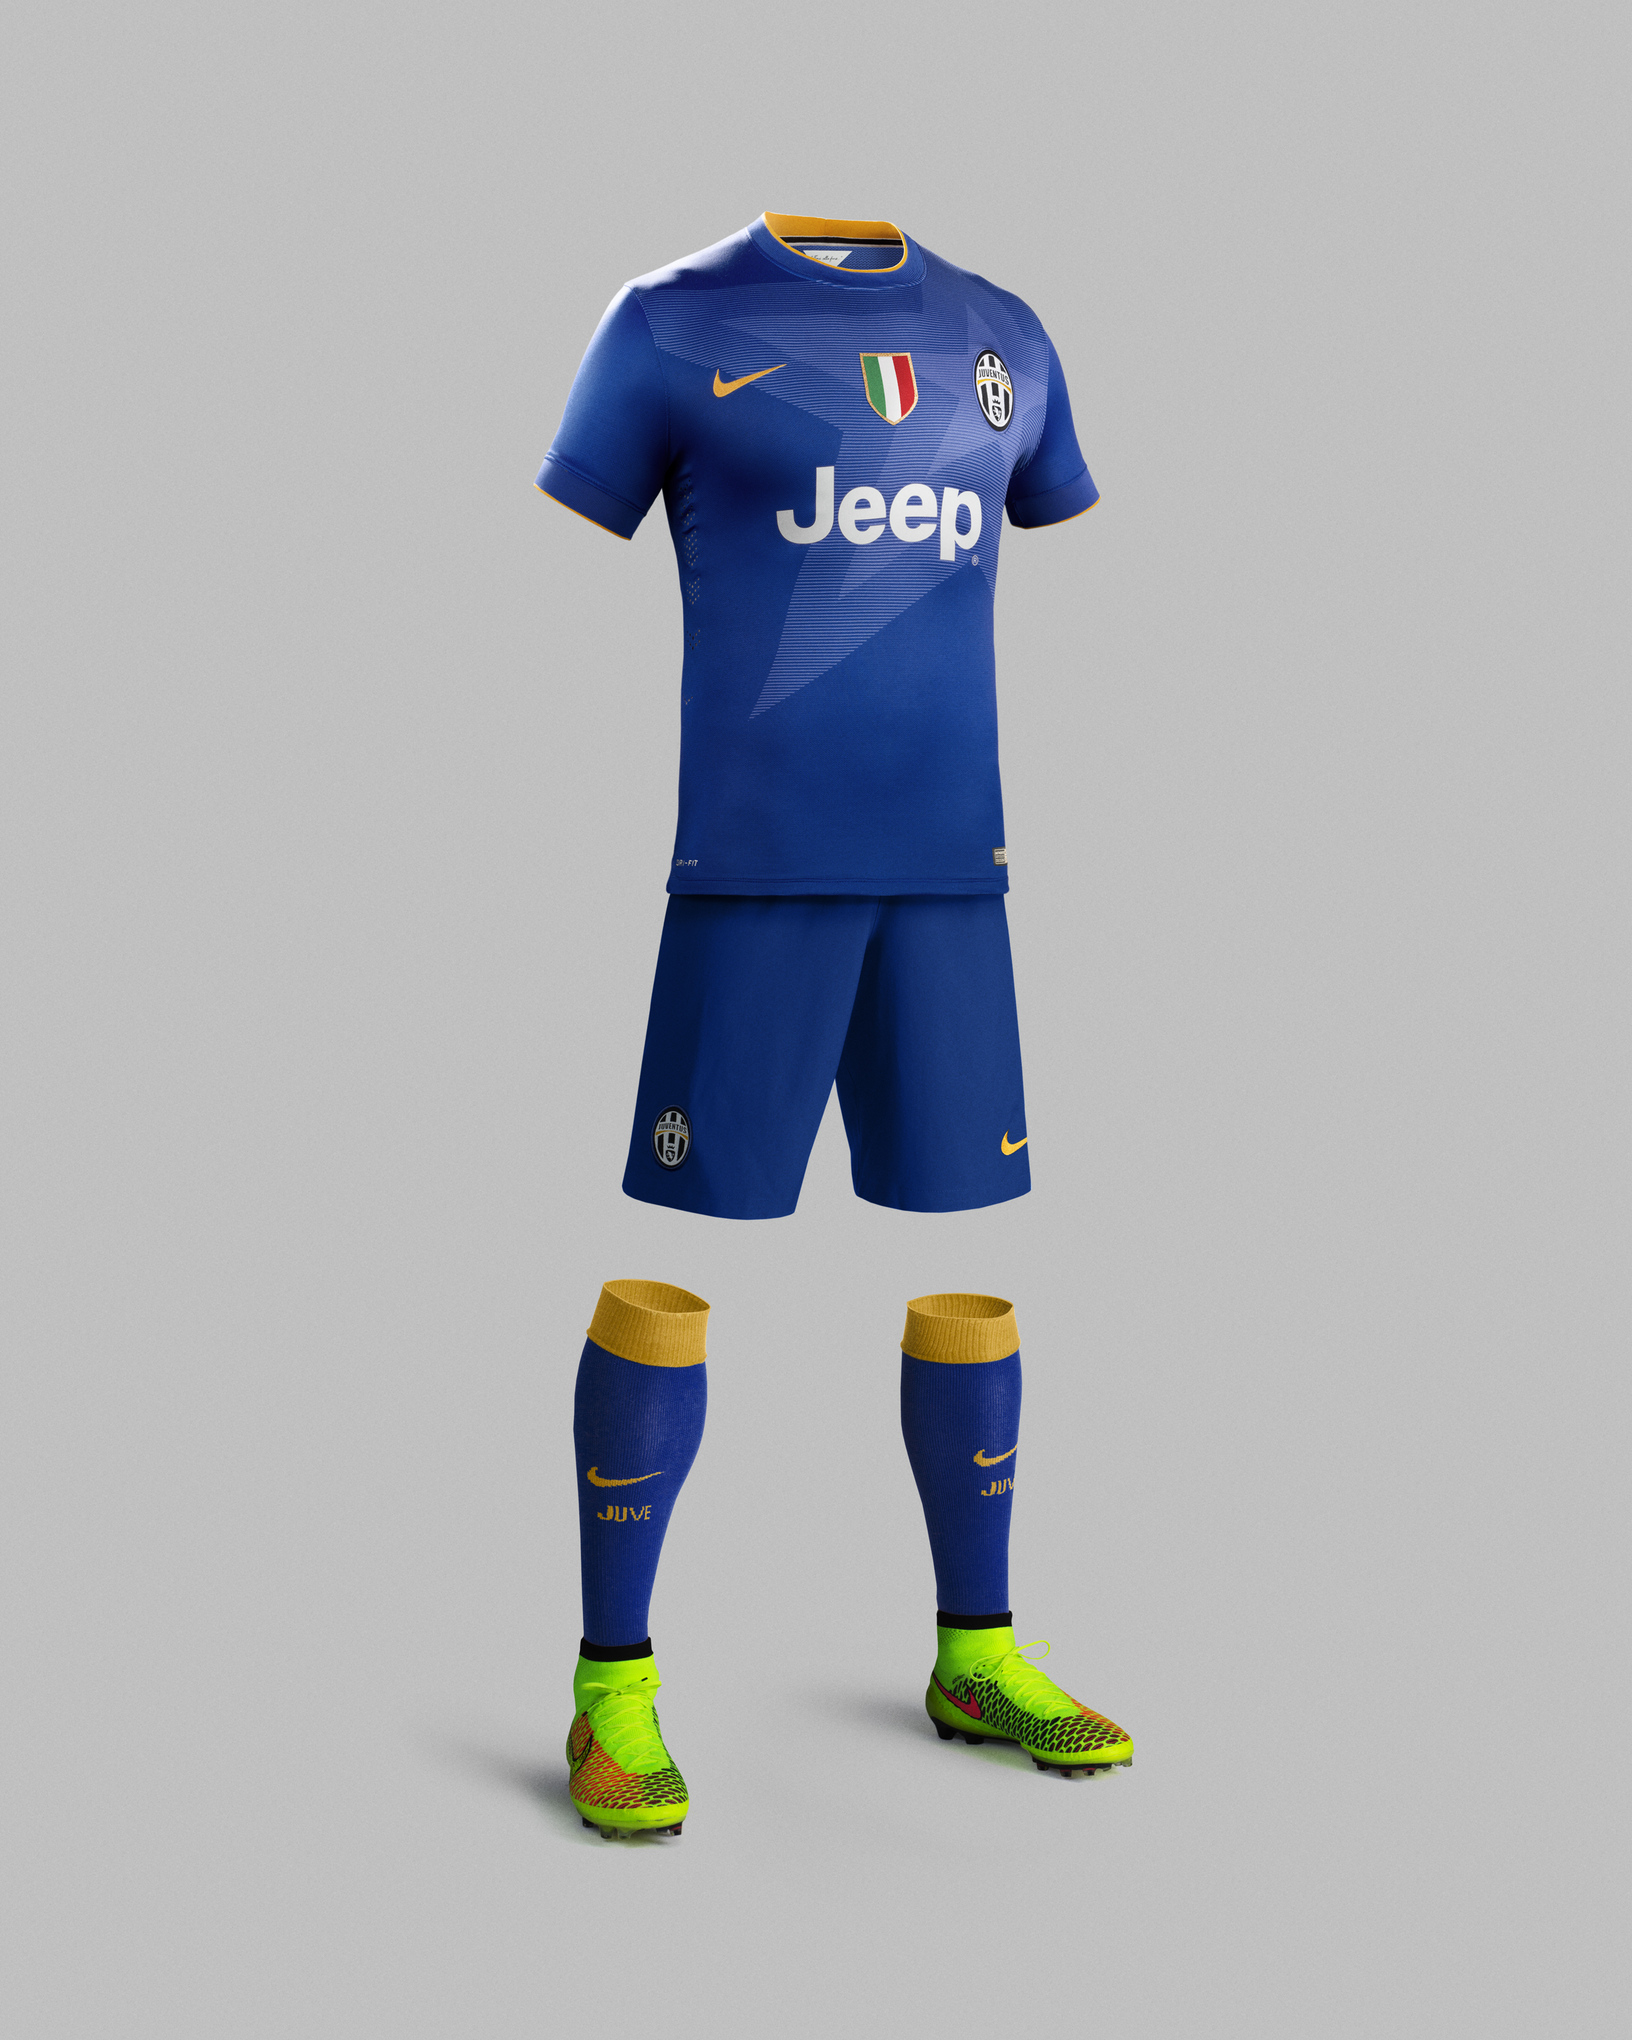 2014 15 Juventus home and away kits are Nike s last dance with the ... 06264cd24